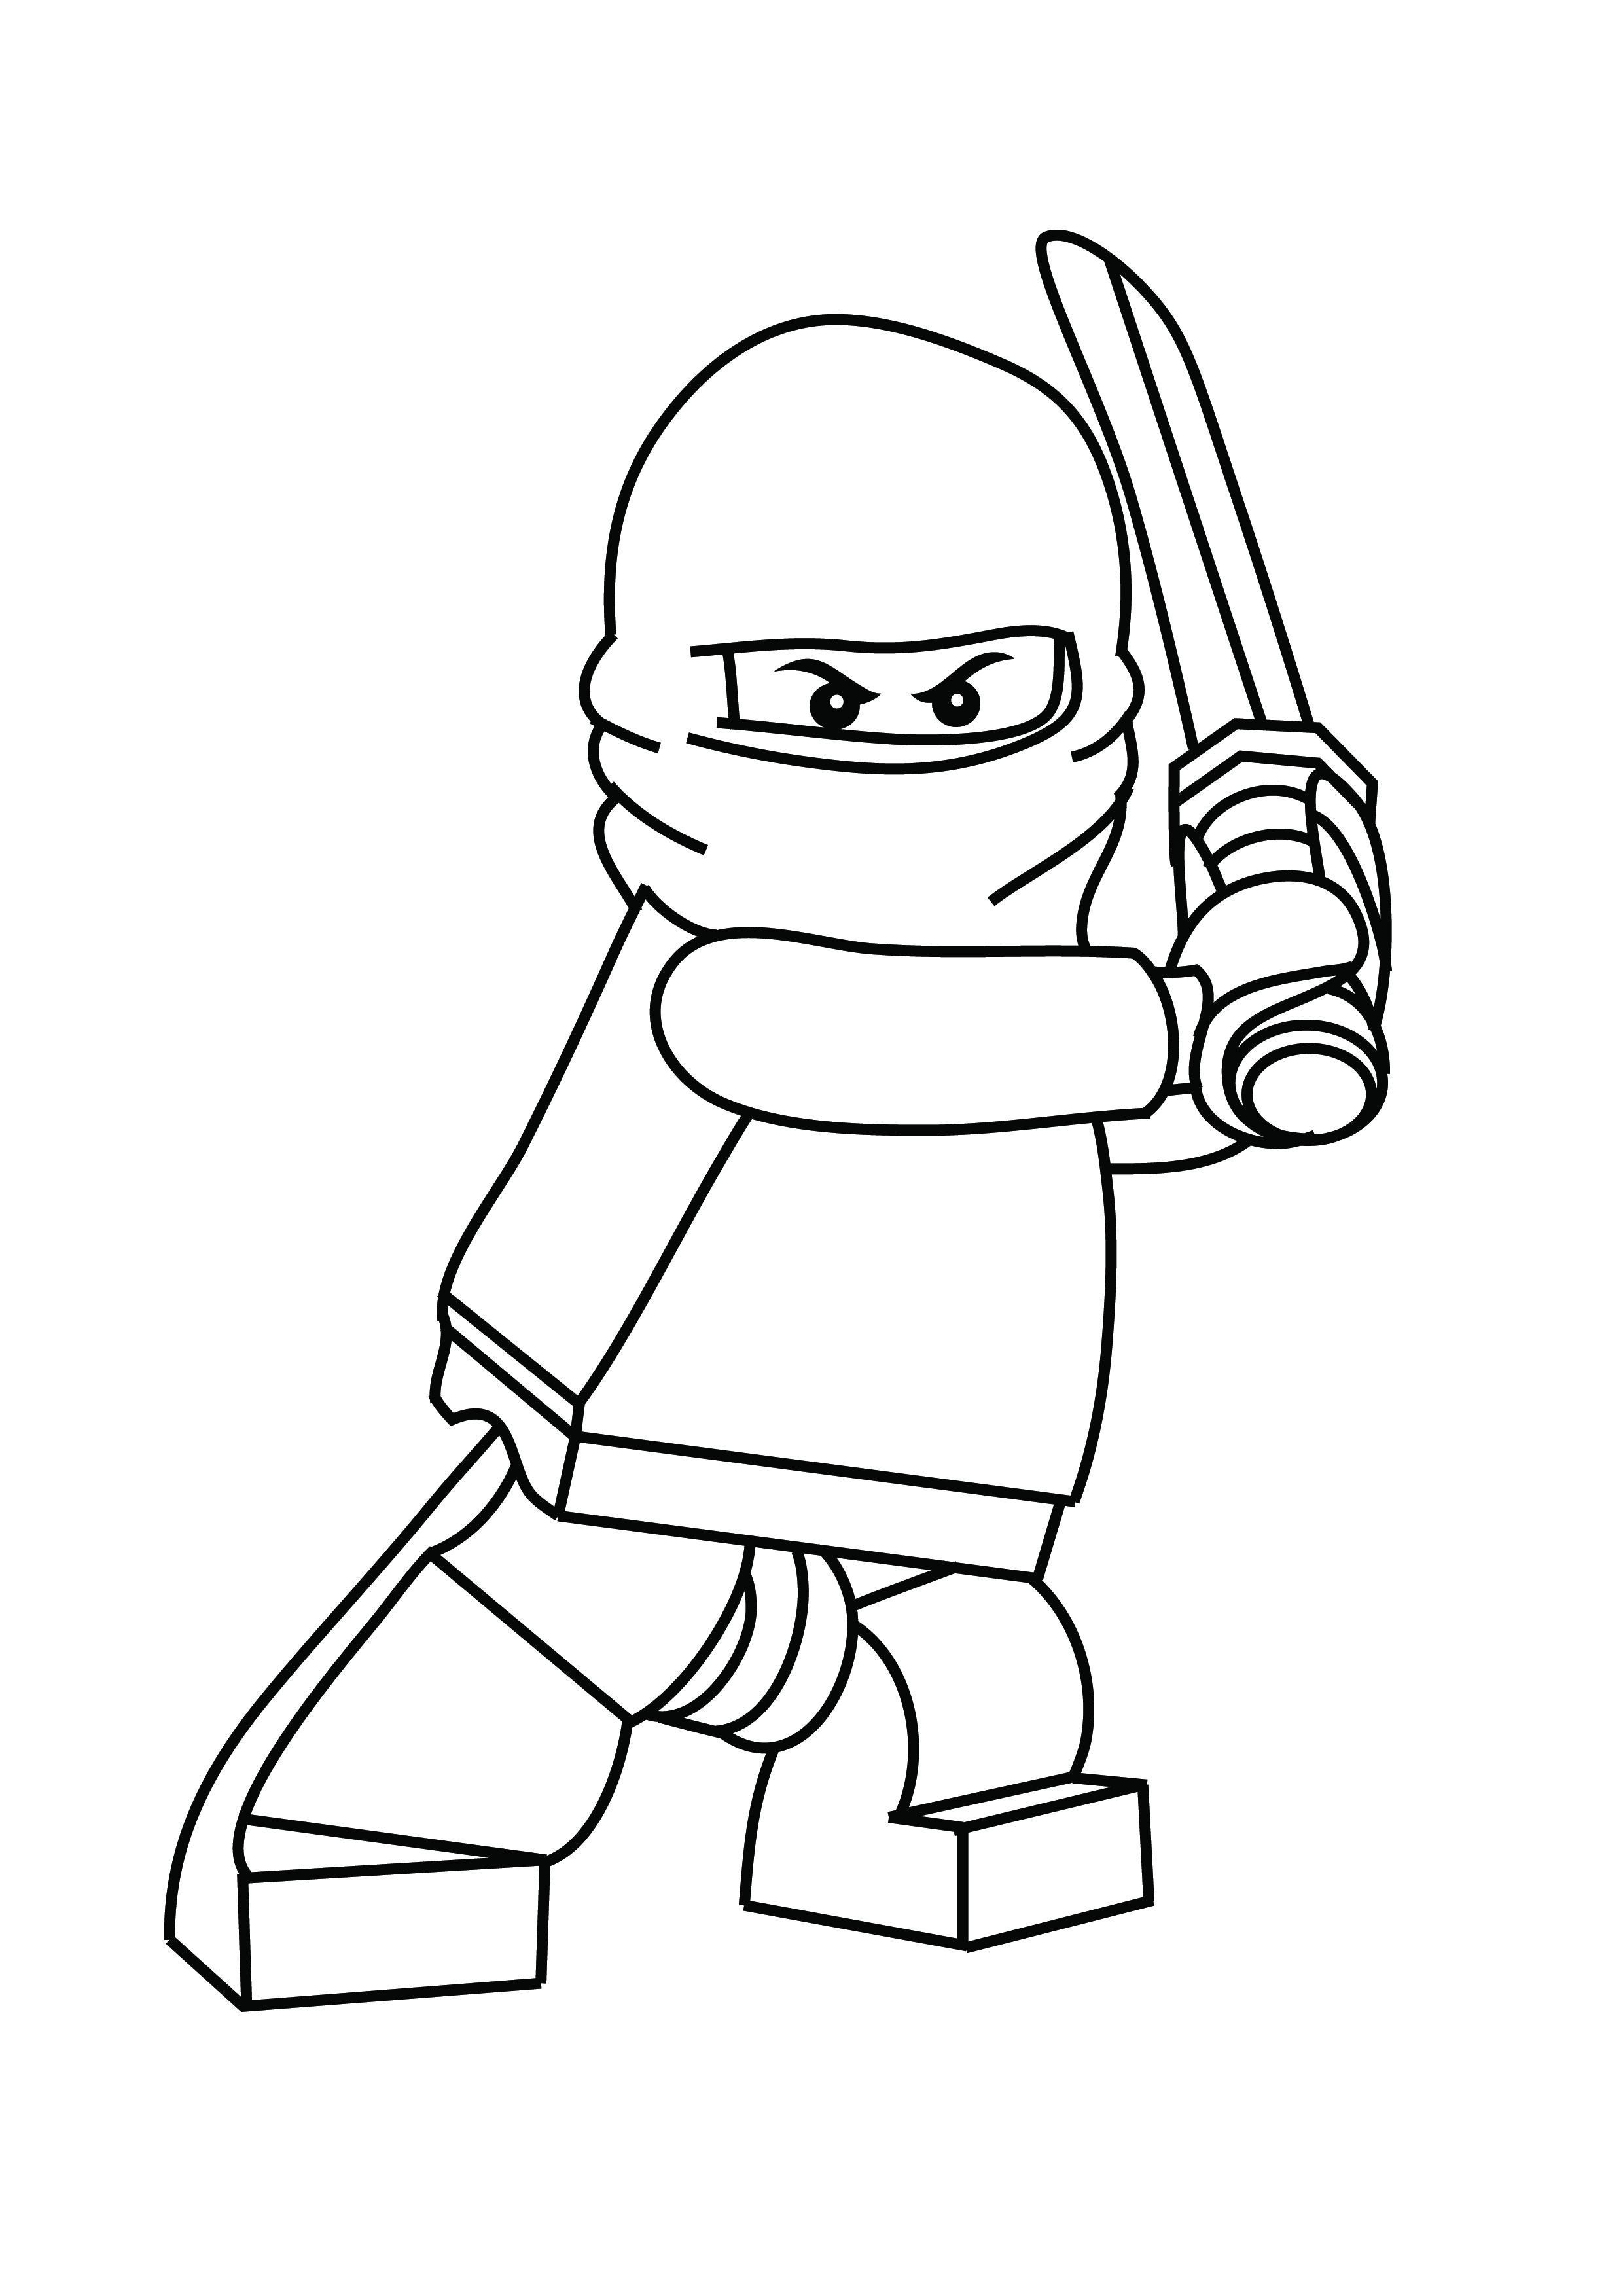 2480x3508 Lego Man Coloring Page